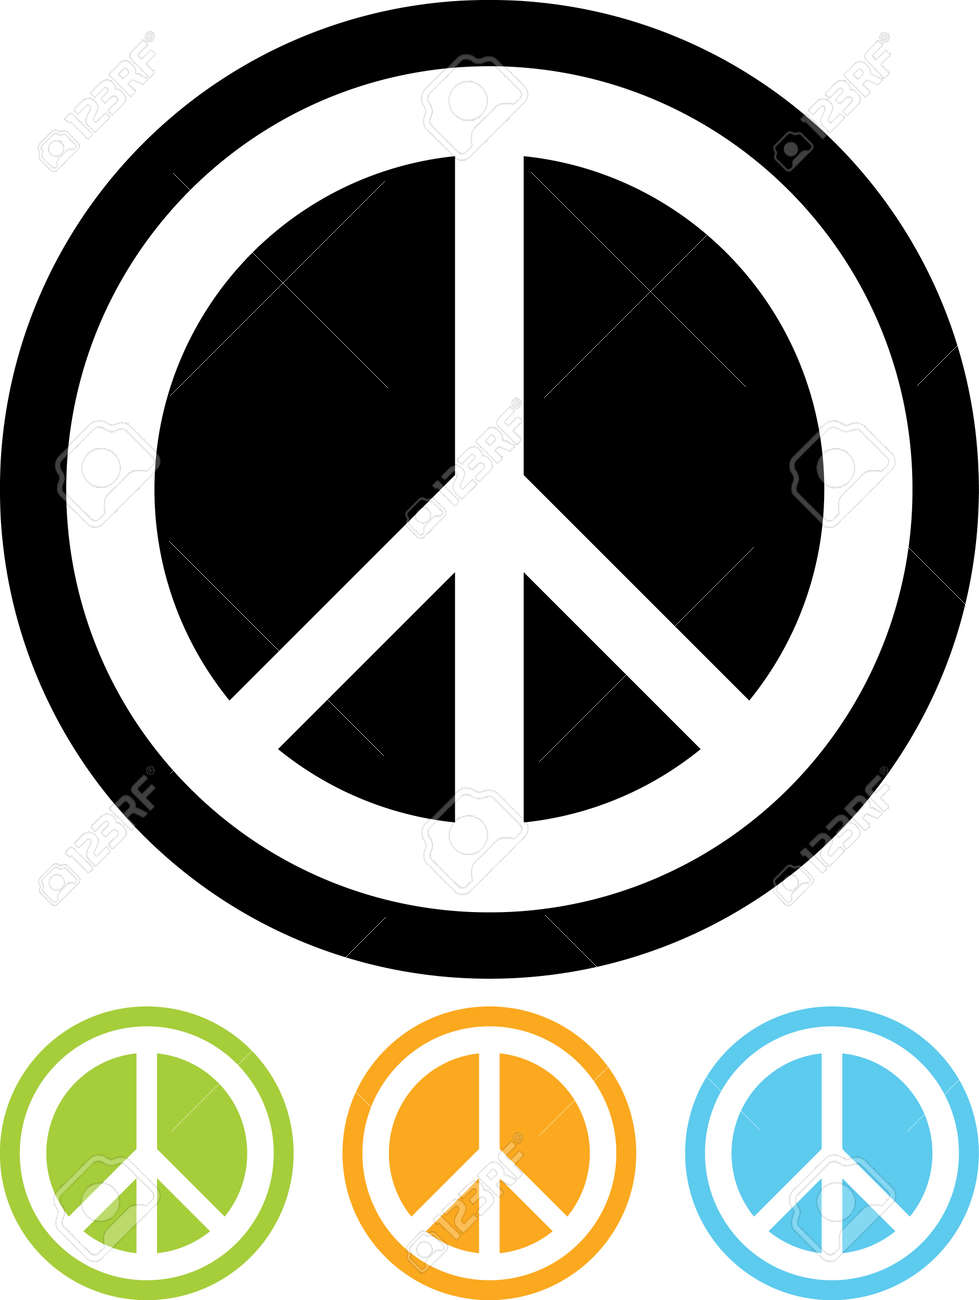 peace sign vector isolated royalty free cliparts vectors and stock rh 123rf com peace sign vector black and white peace sign vector black and white